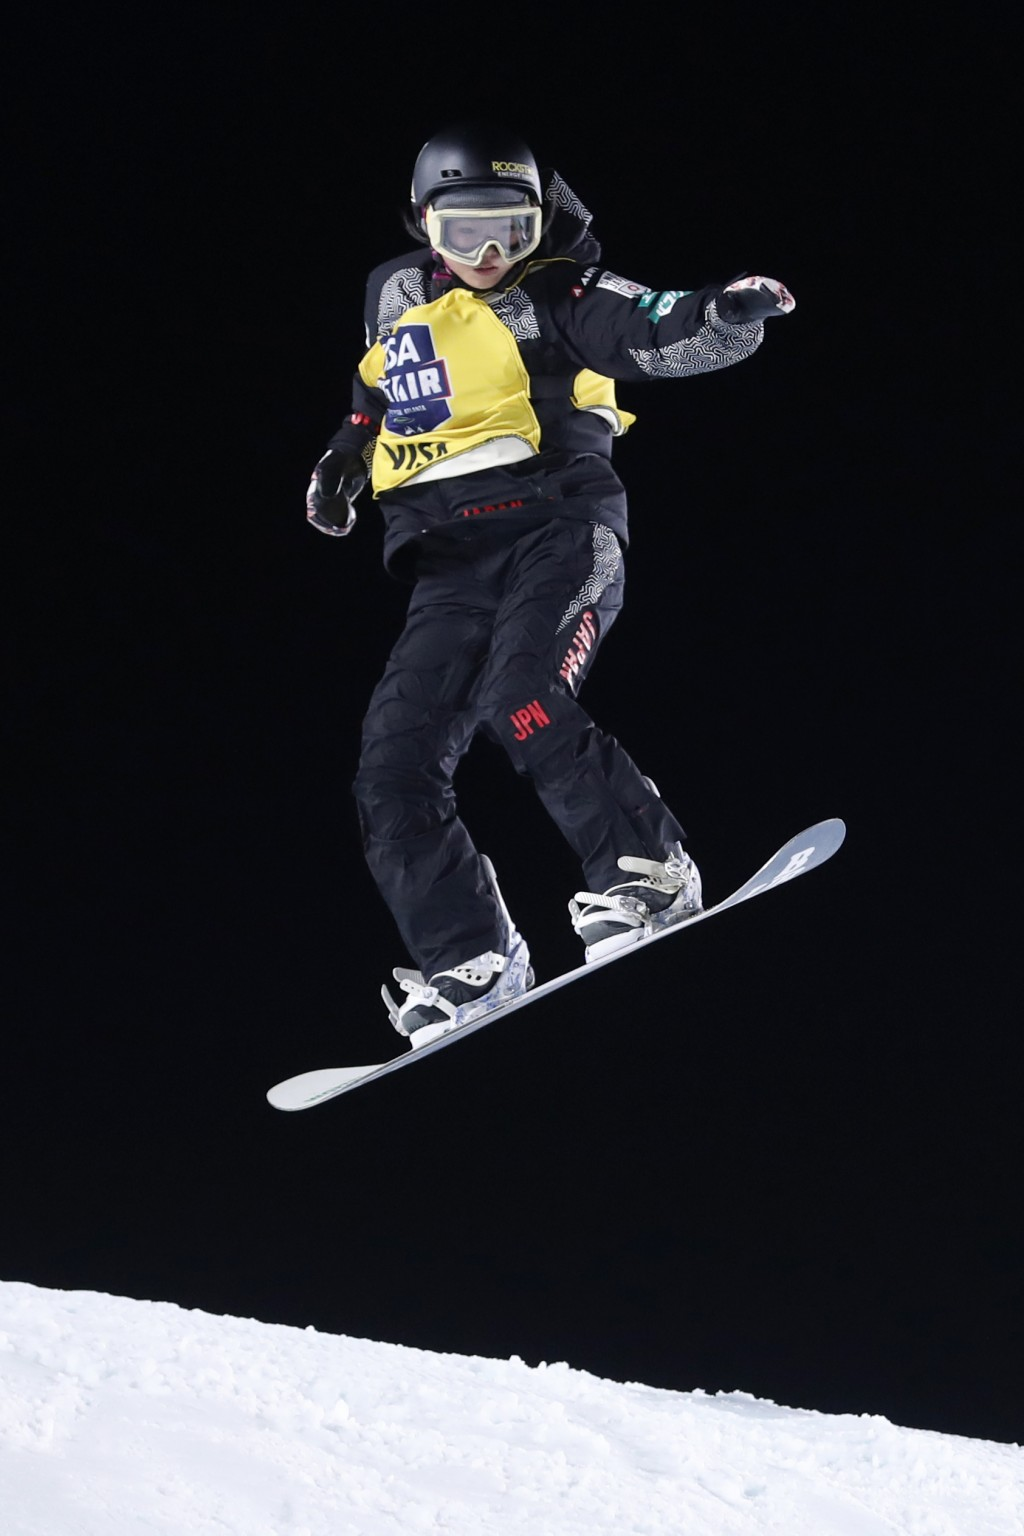 Reira Iwabuchi, of Japan, jumps during the finals of the Big Atlanta snowboard competition Friday, Dec. 20, 2019, in Atlanta. Iwabuchi won the event. ...